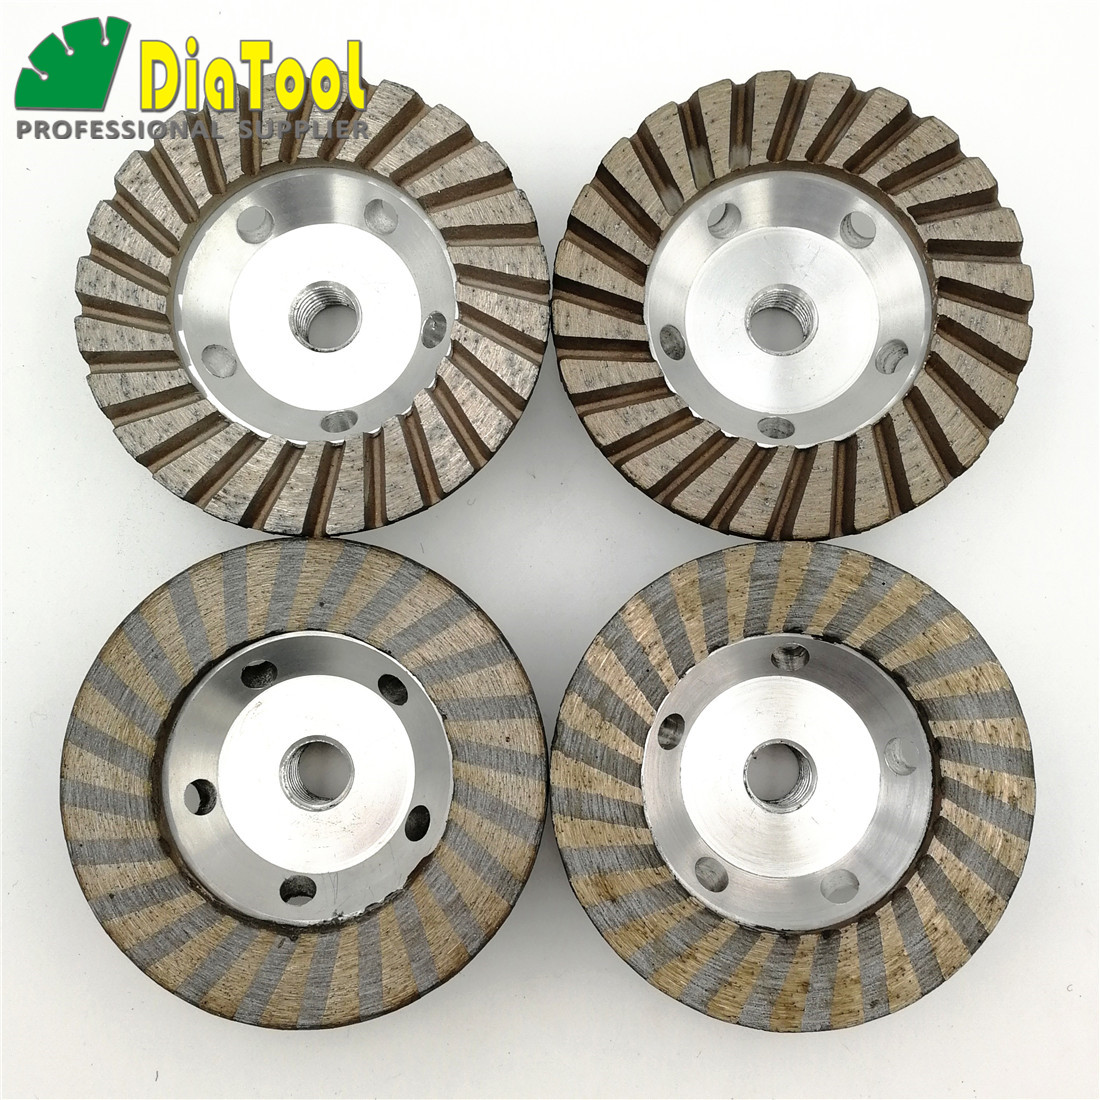 DIATOOL Diameter 100mm Aluminum Based Grinding Cup Wheel 5/8-11 Thread Diamond Grinding disc for Granite marble concrete brock 2pcs dia 125mmx10mm vacuum brazed diamond grinding wheel dia 5 beveling wheel flat for marble granite artificial concrete stone